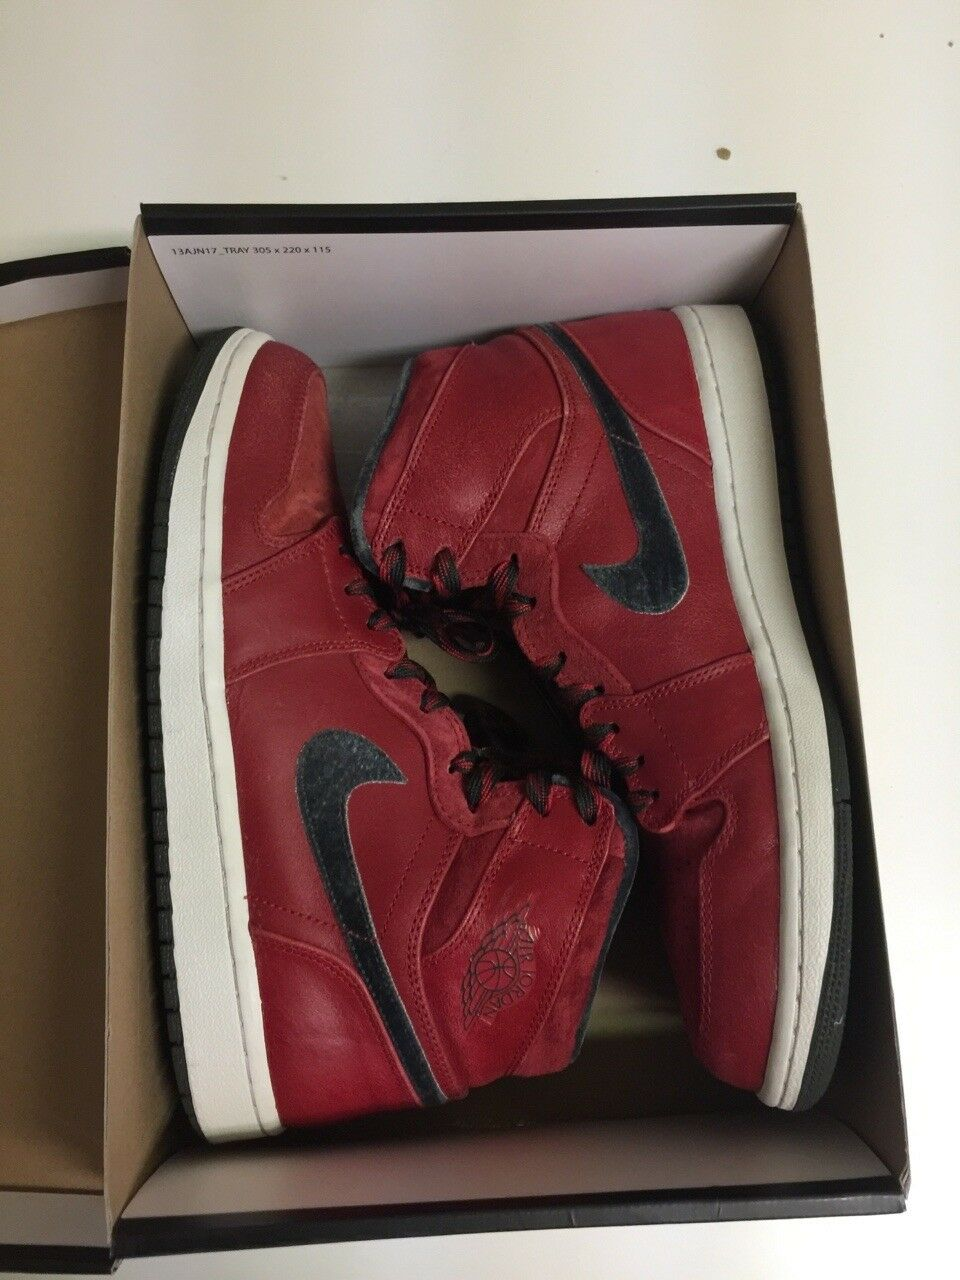 nike air jordan 1 green red bred off white kanye west fear of god